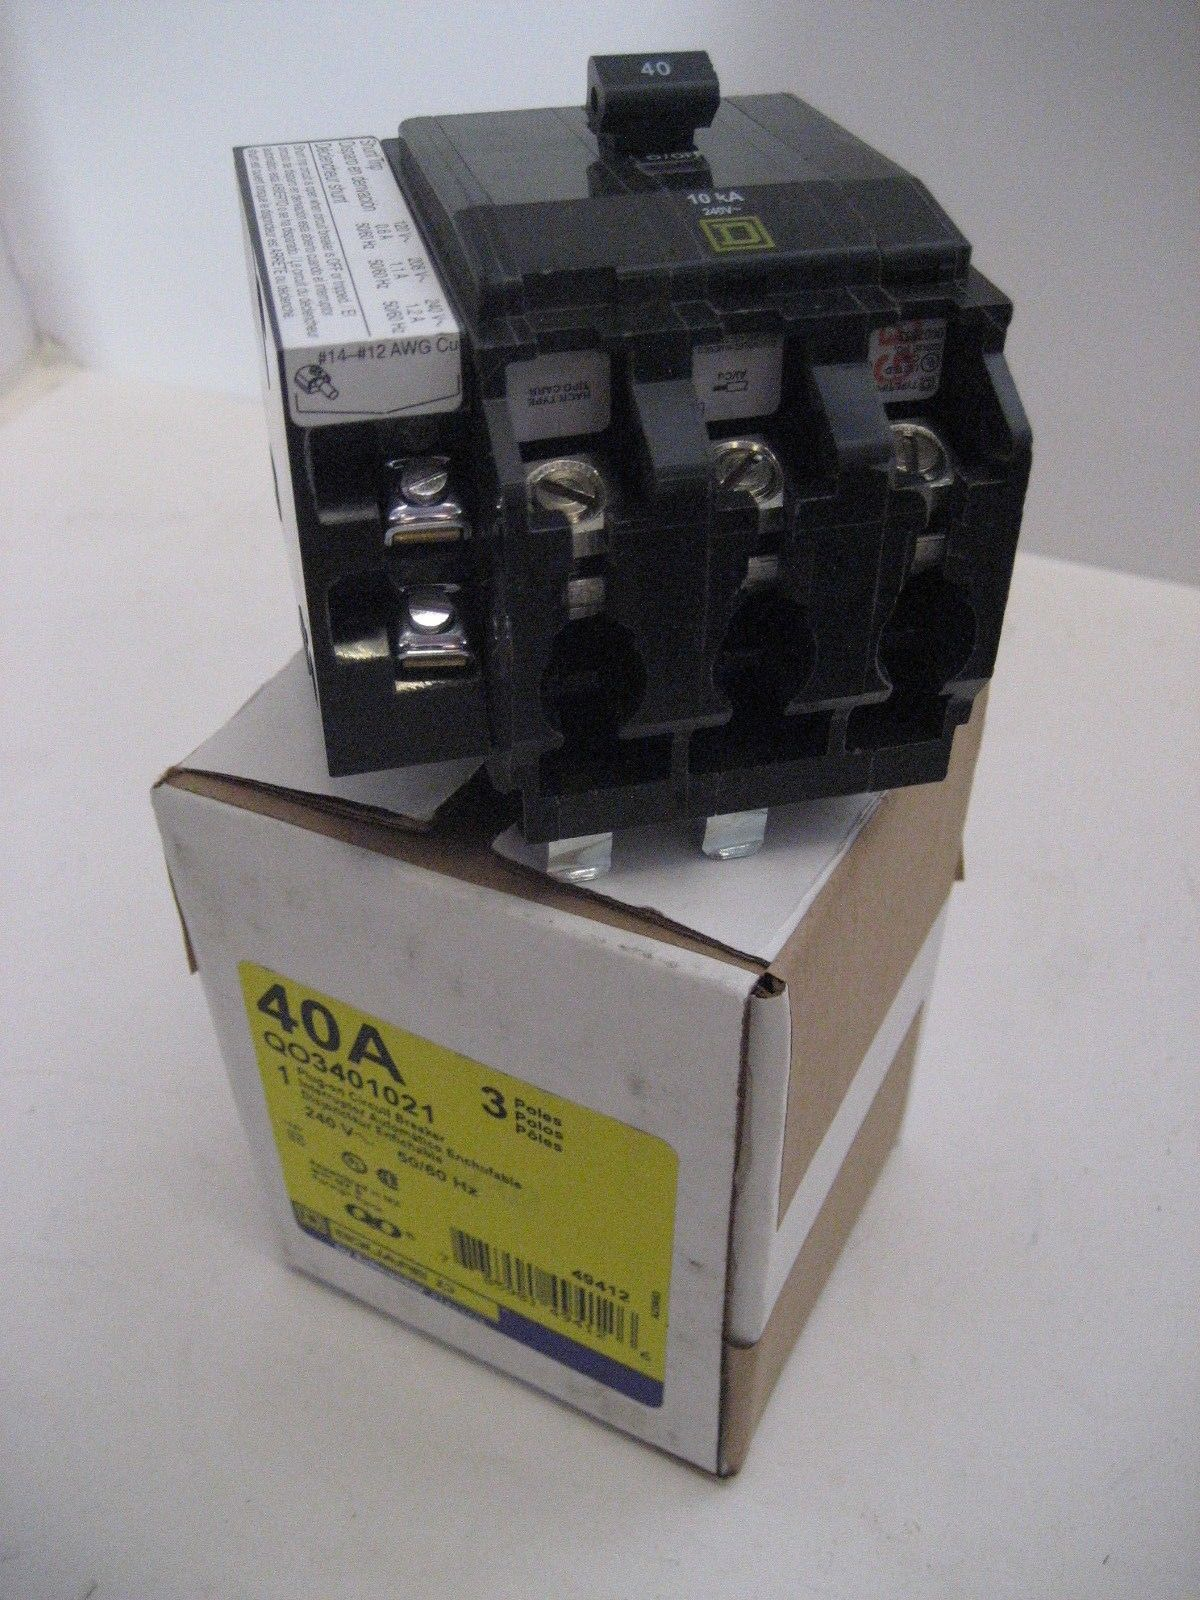 Newsquare D Qo3401021 3 Pole Phase 40 Amp 240 Volt Shunt Trip How Do Breakers Work Breaker